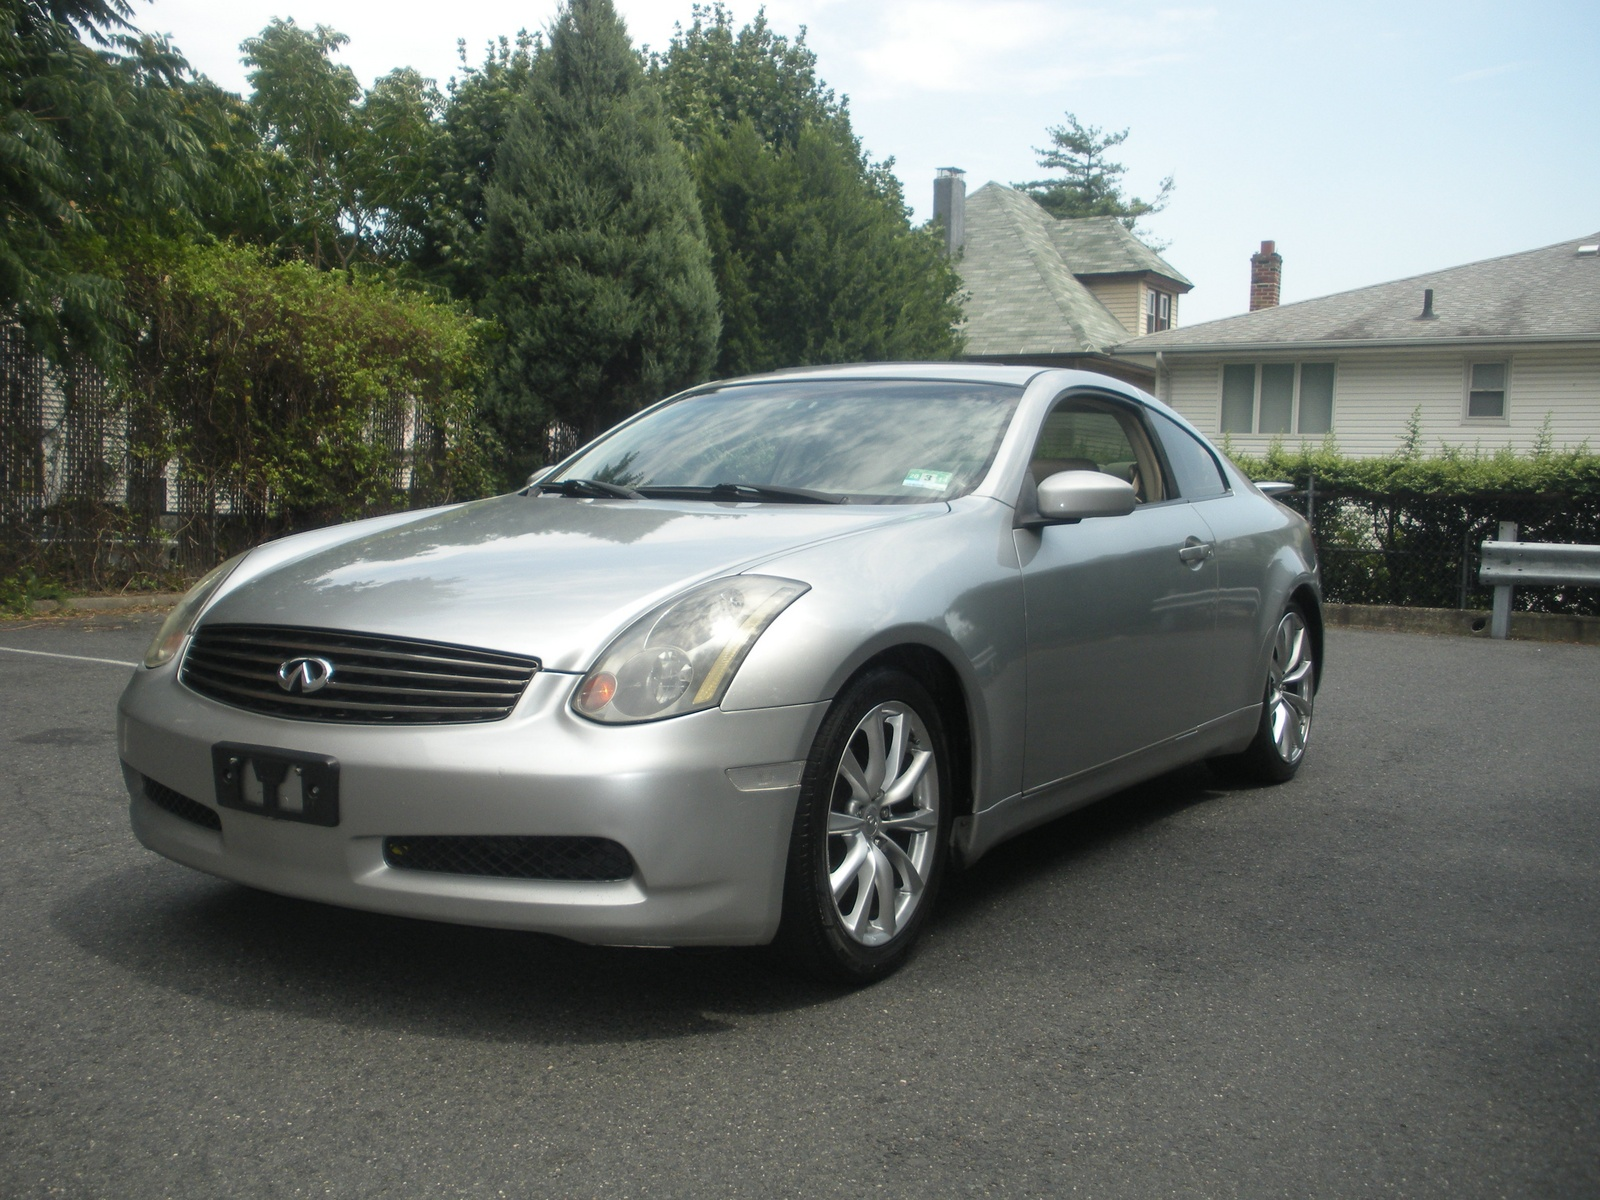 2004 infiniti g35 coupe for sale cargurus 2004 infiniti g35 coupe custom interior